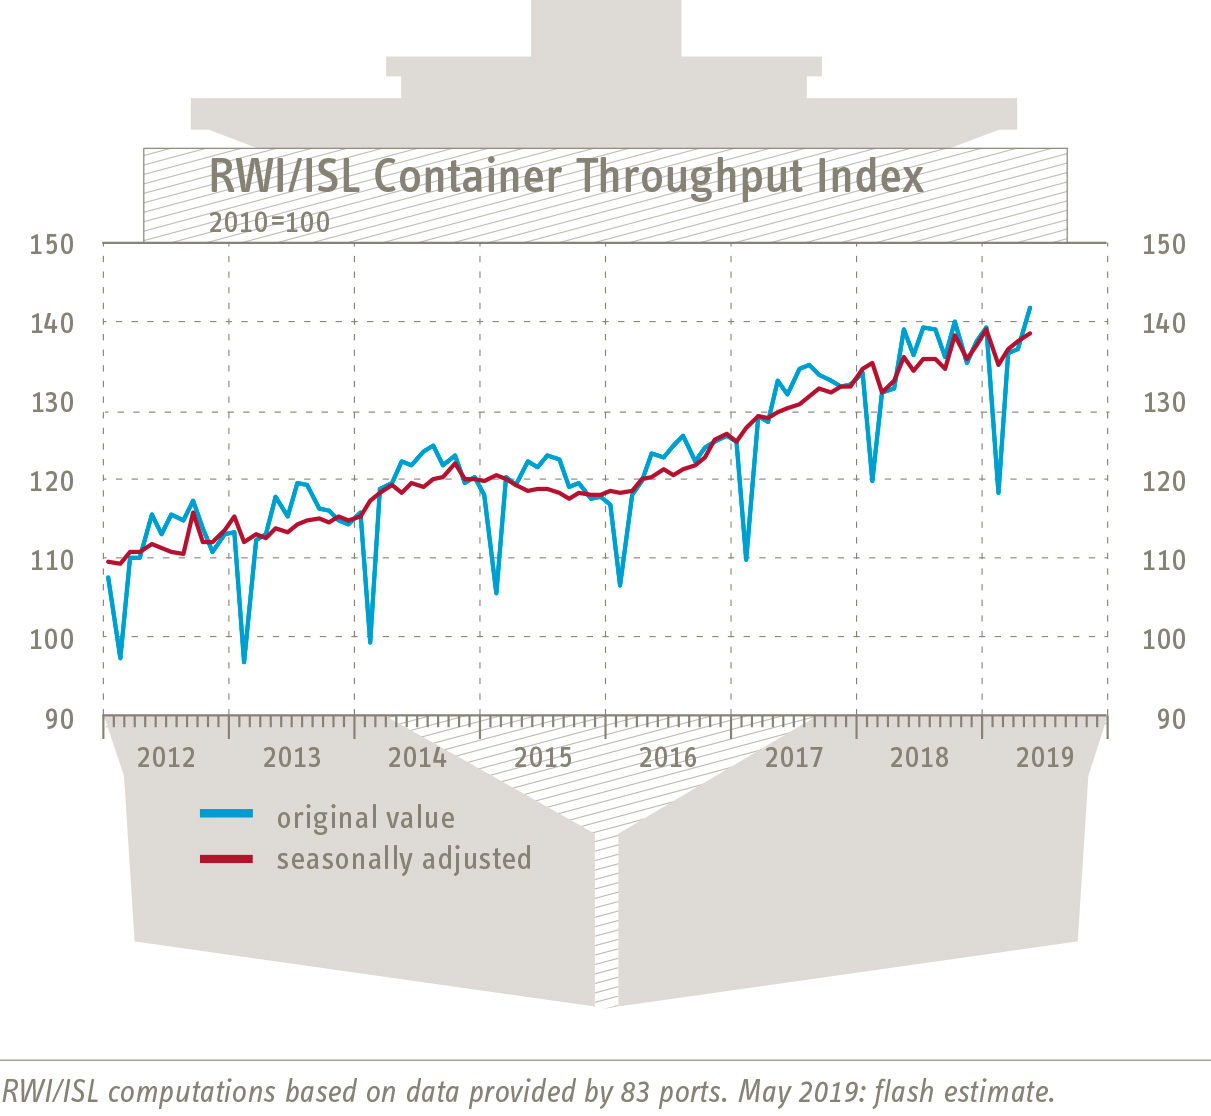 RWI/ISL Container Throughput Index: World trade despite trade conflicts with upward trend